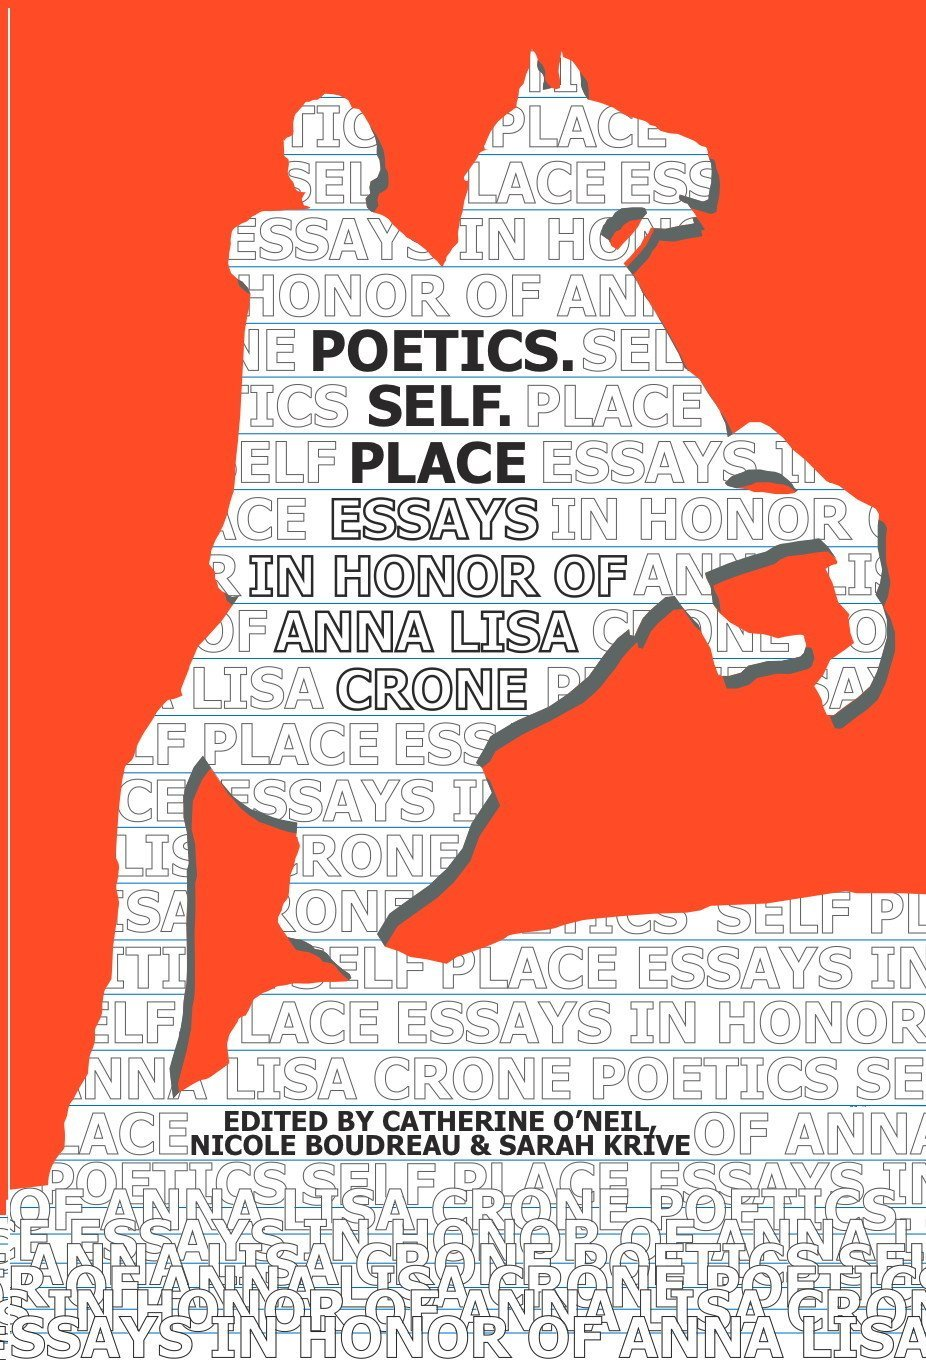 Poetics, Self, Place: Essays in Honor of Anna Lisa Crone written by Anna Lisa Crone